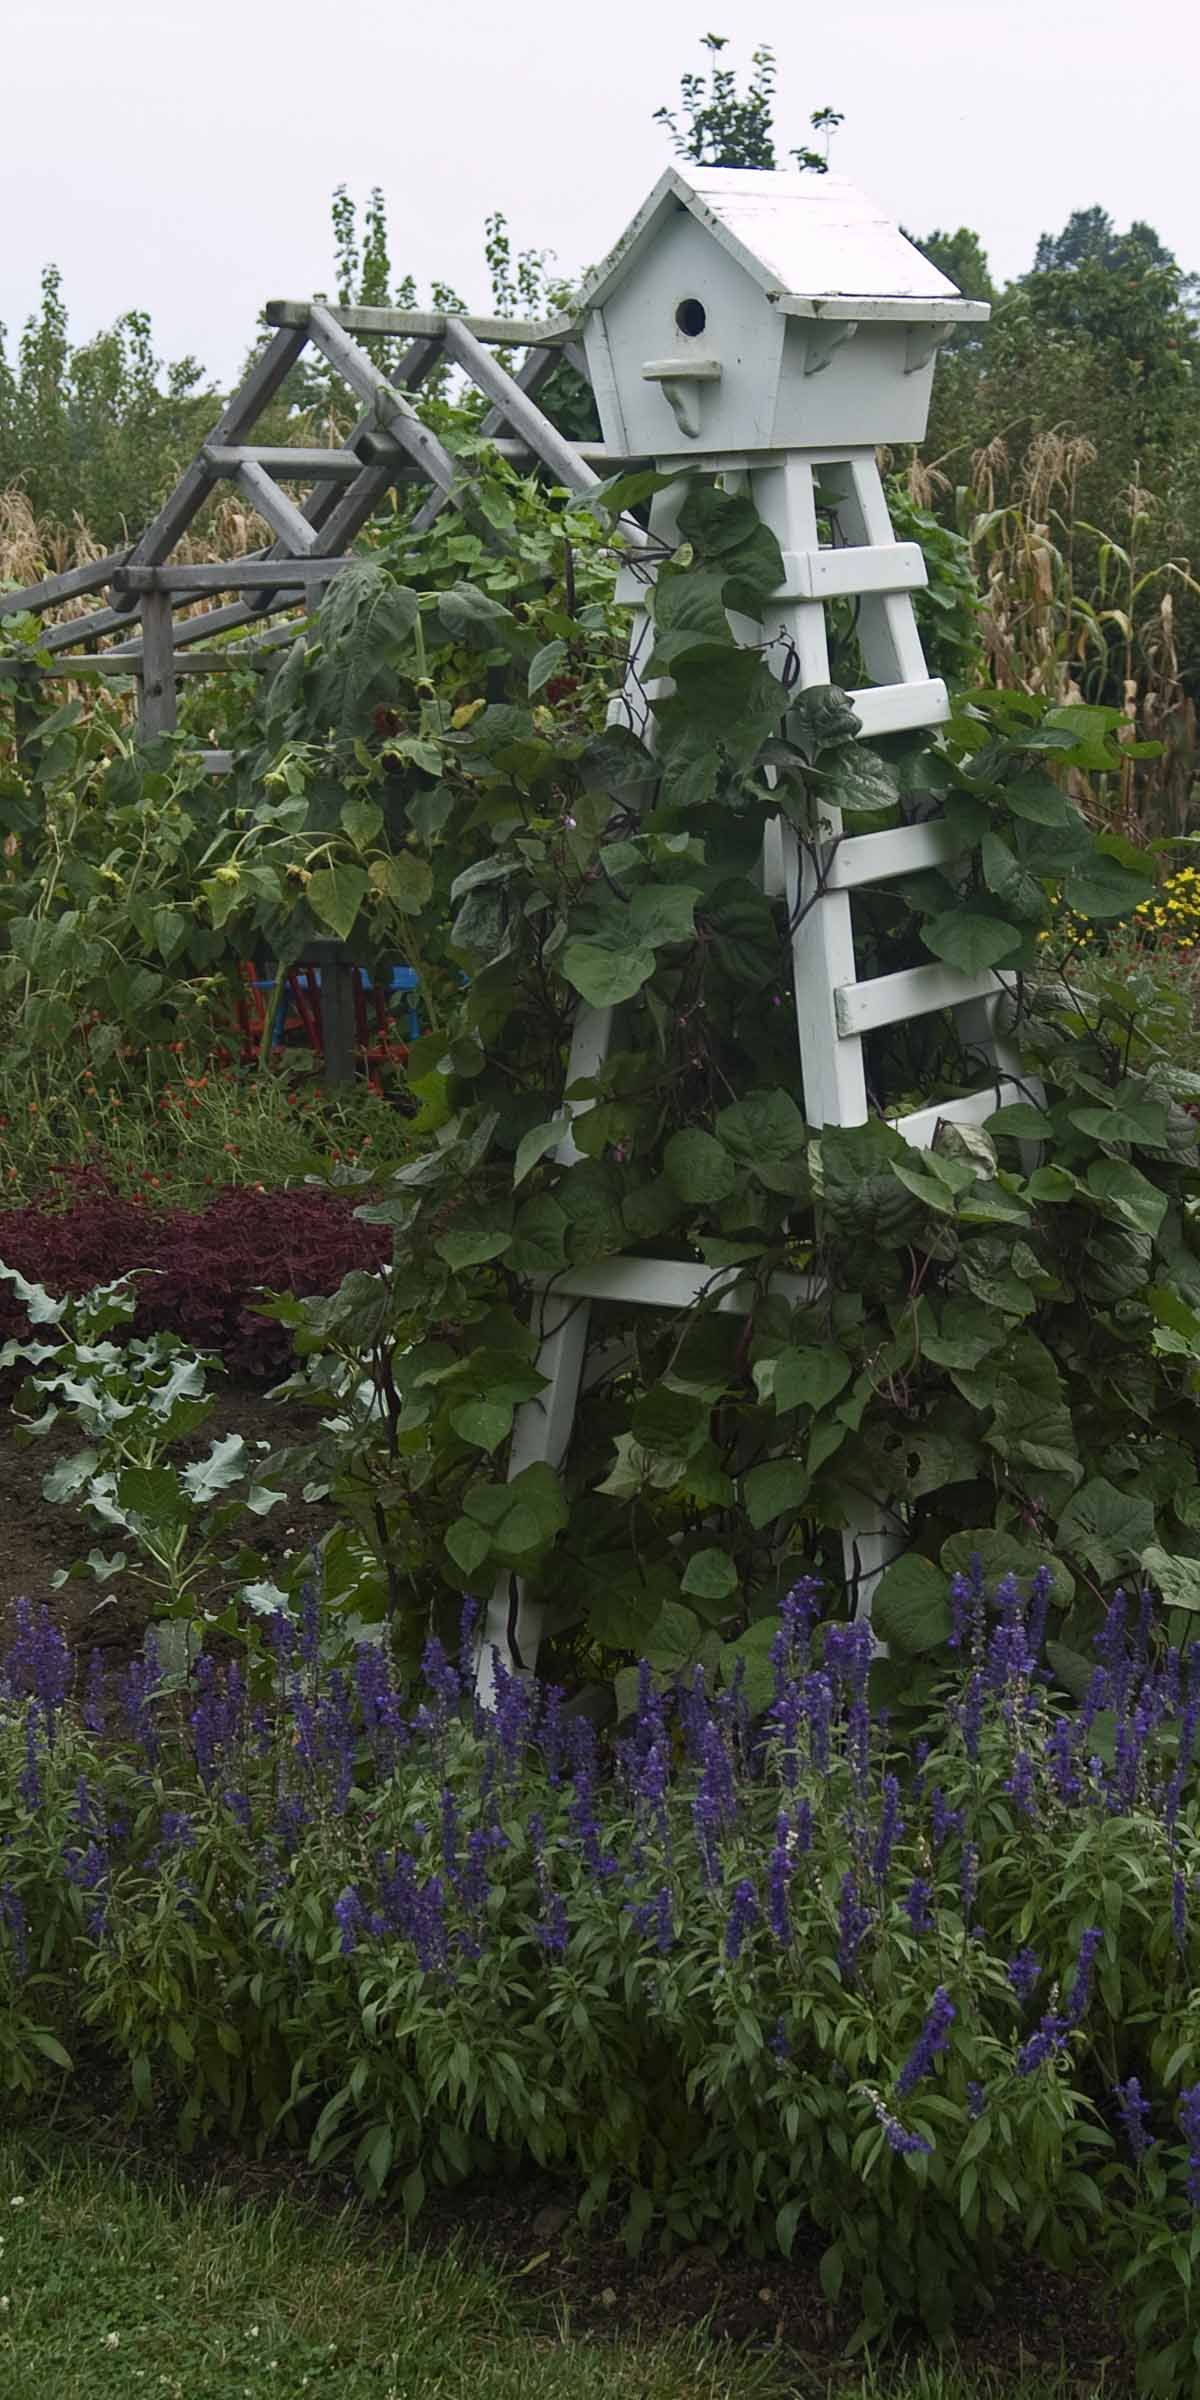 Bon Birdhouse With Trellis Base  What A Great Way To Decorate The Garden And  Still Have A Useful Trellis For Vines Etc. I Can See It In My Veggie Garden  With ...